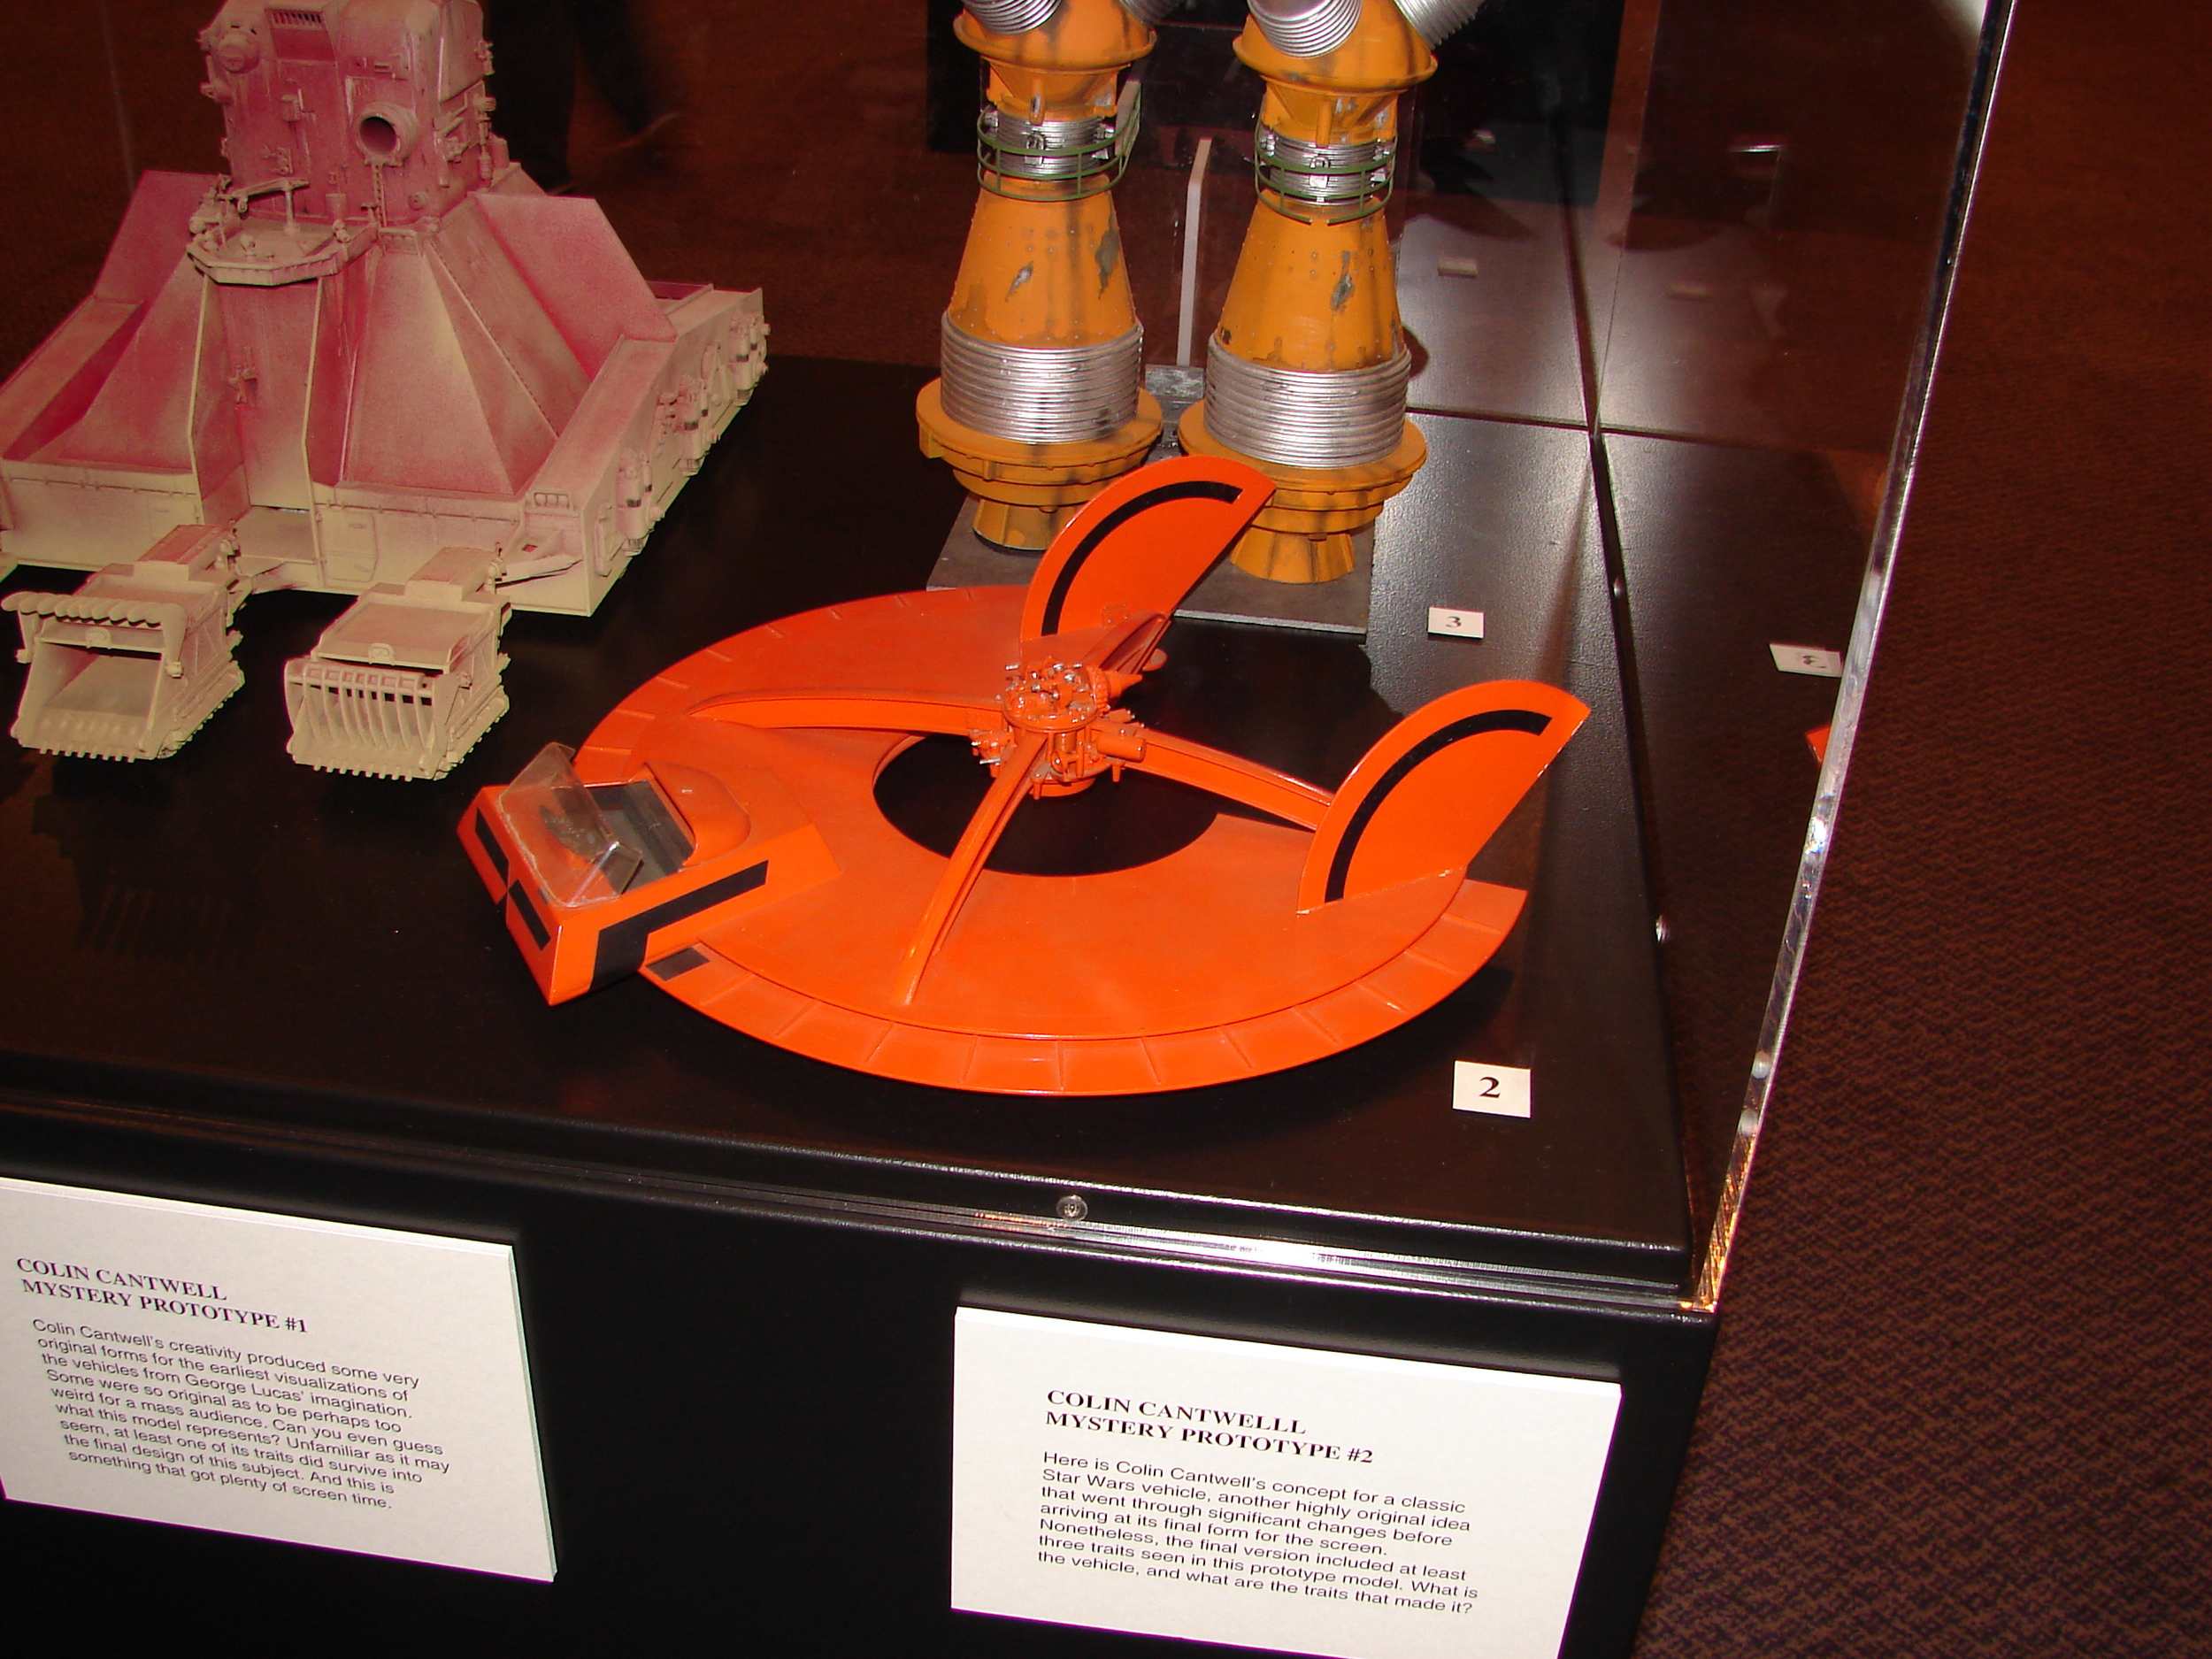 Colin Cantwell's land speeder, photo by dsatterth .